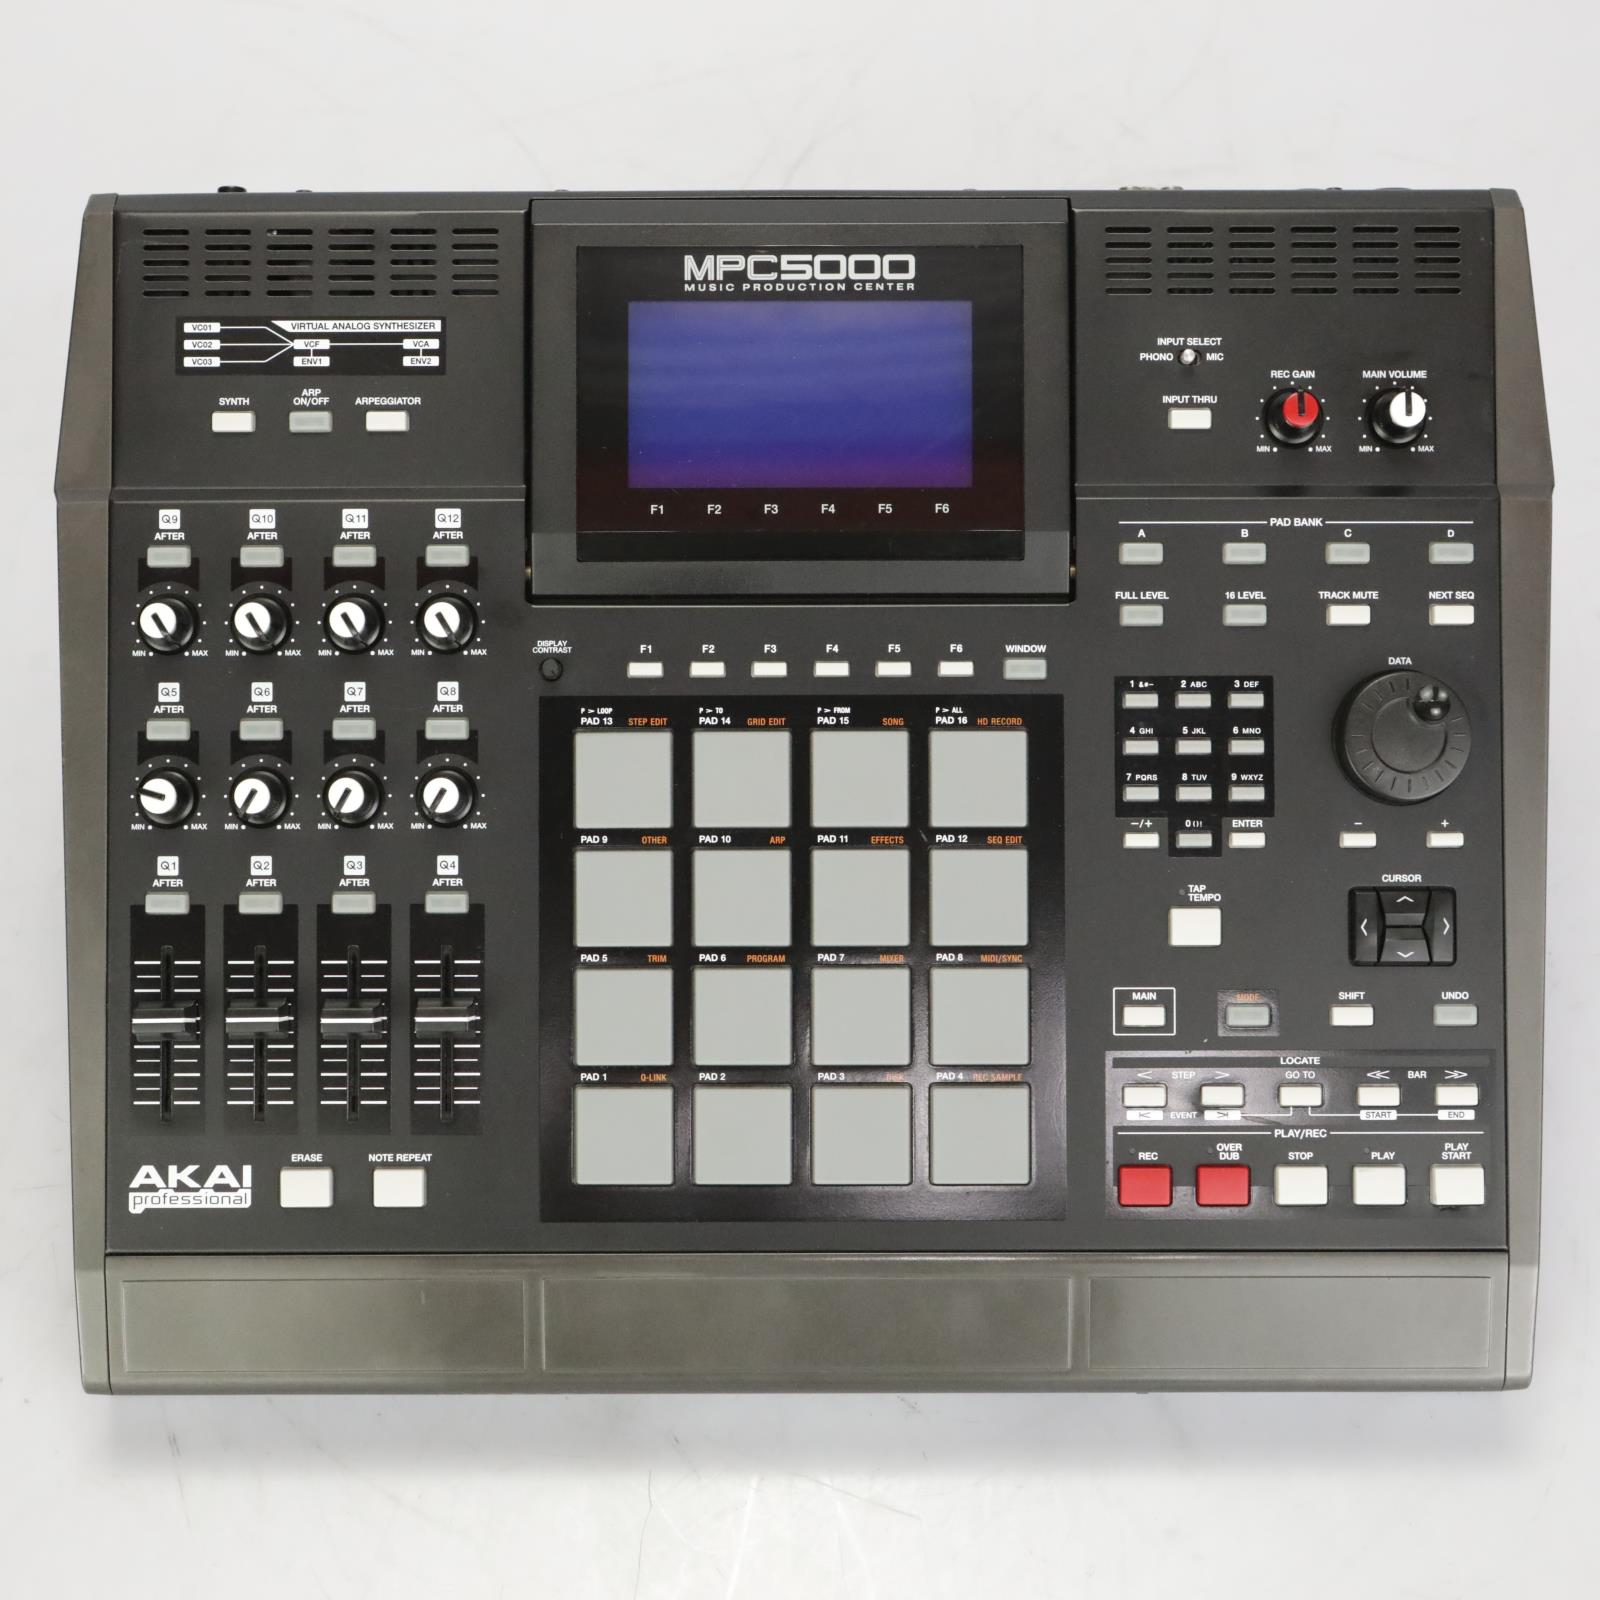 Akai MPC 5000 MPC5000 Sequencer & Sampler Used by The Black Eyed Peas #37601